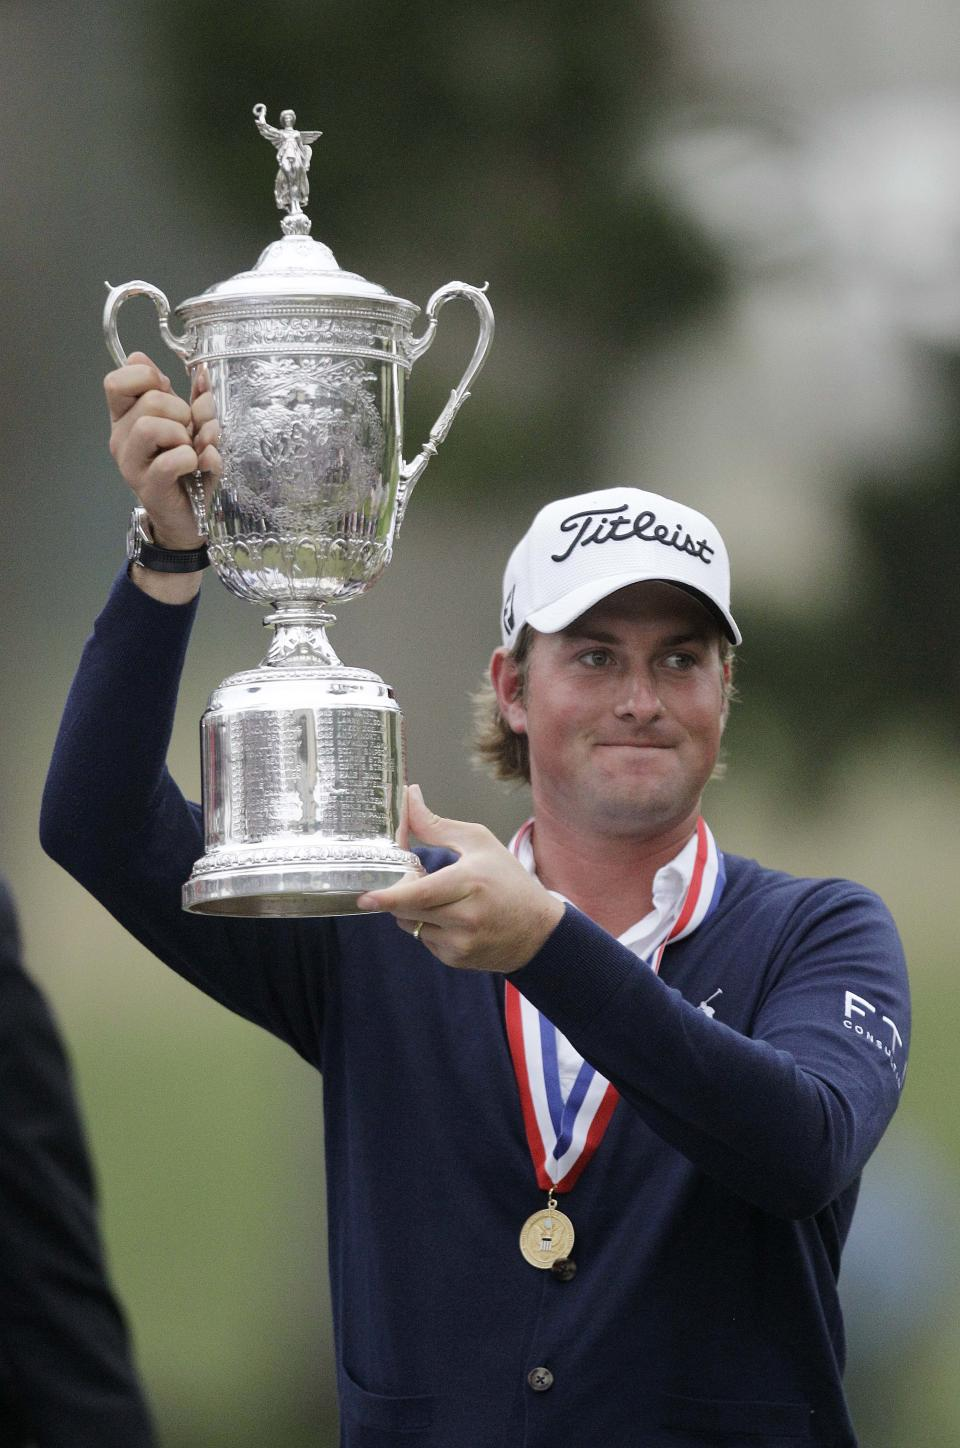 Webb Simpson holds up the championship trophy after the U.S. Open Championship golf tournament Sunday, June 17, 2012, at The Olympic Club in San Francisco. (AP Photo/Ben Margot)